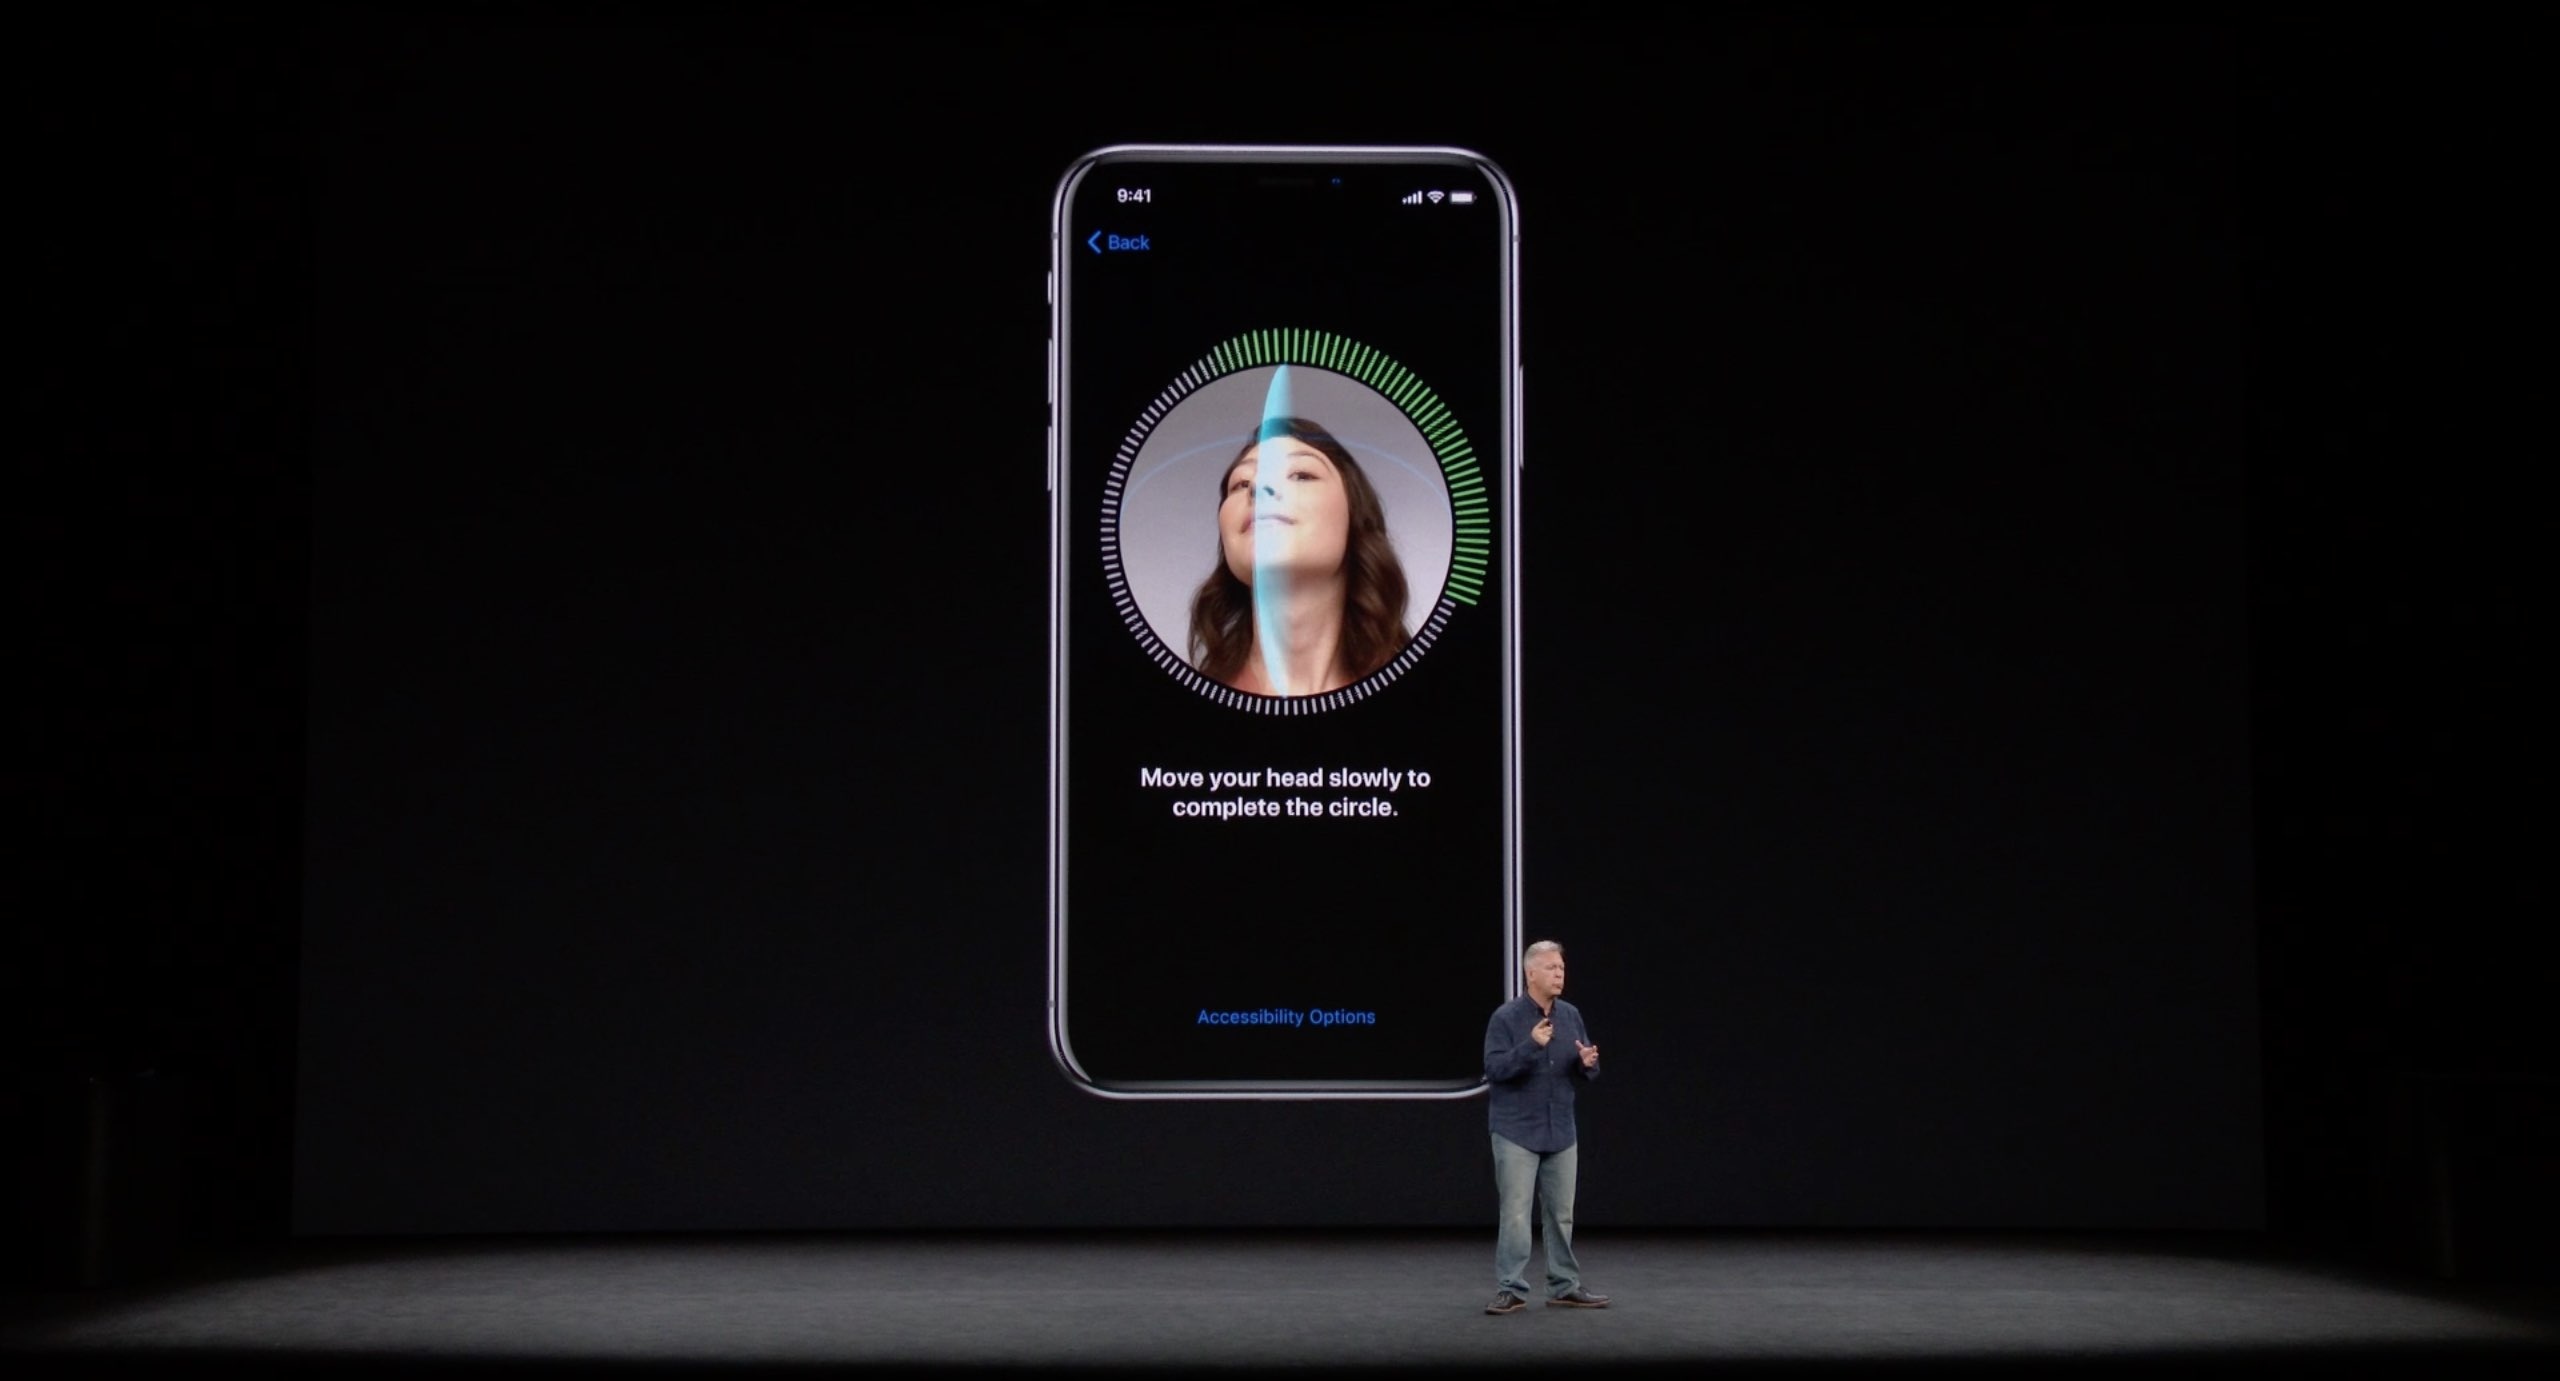 Forsensics Firm wishes the Police does not look at the iPhones of users with Face ID